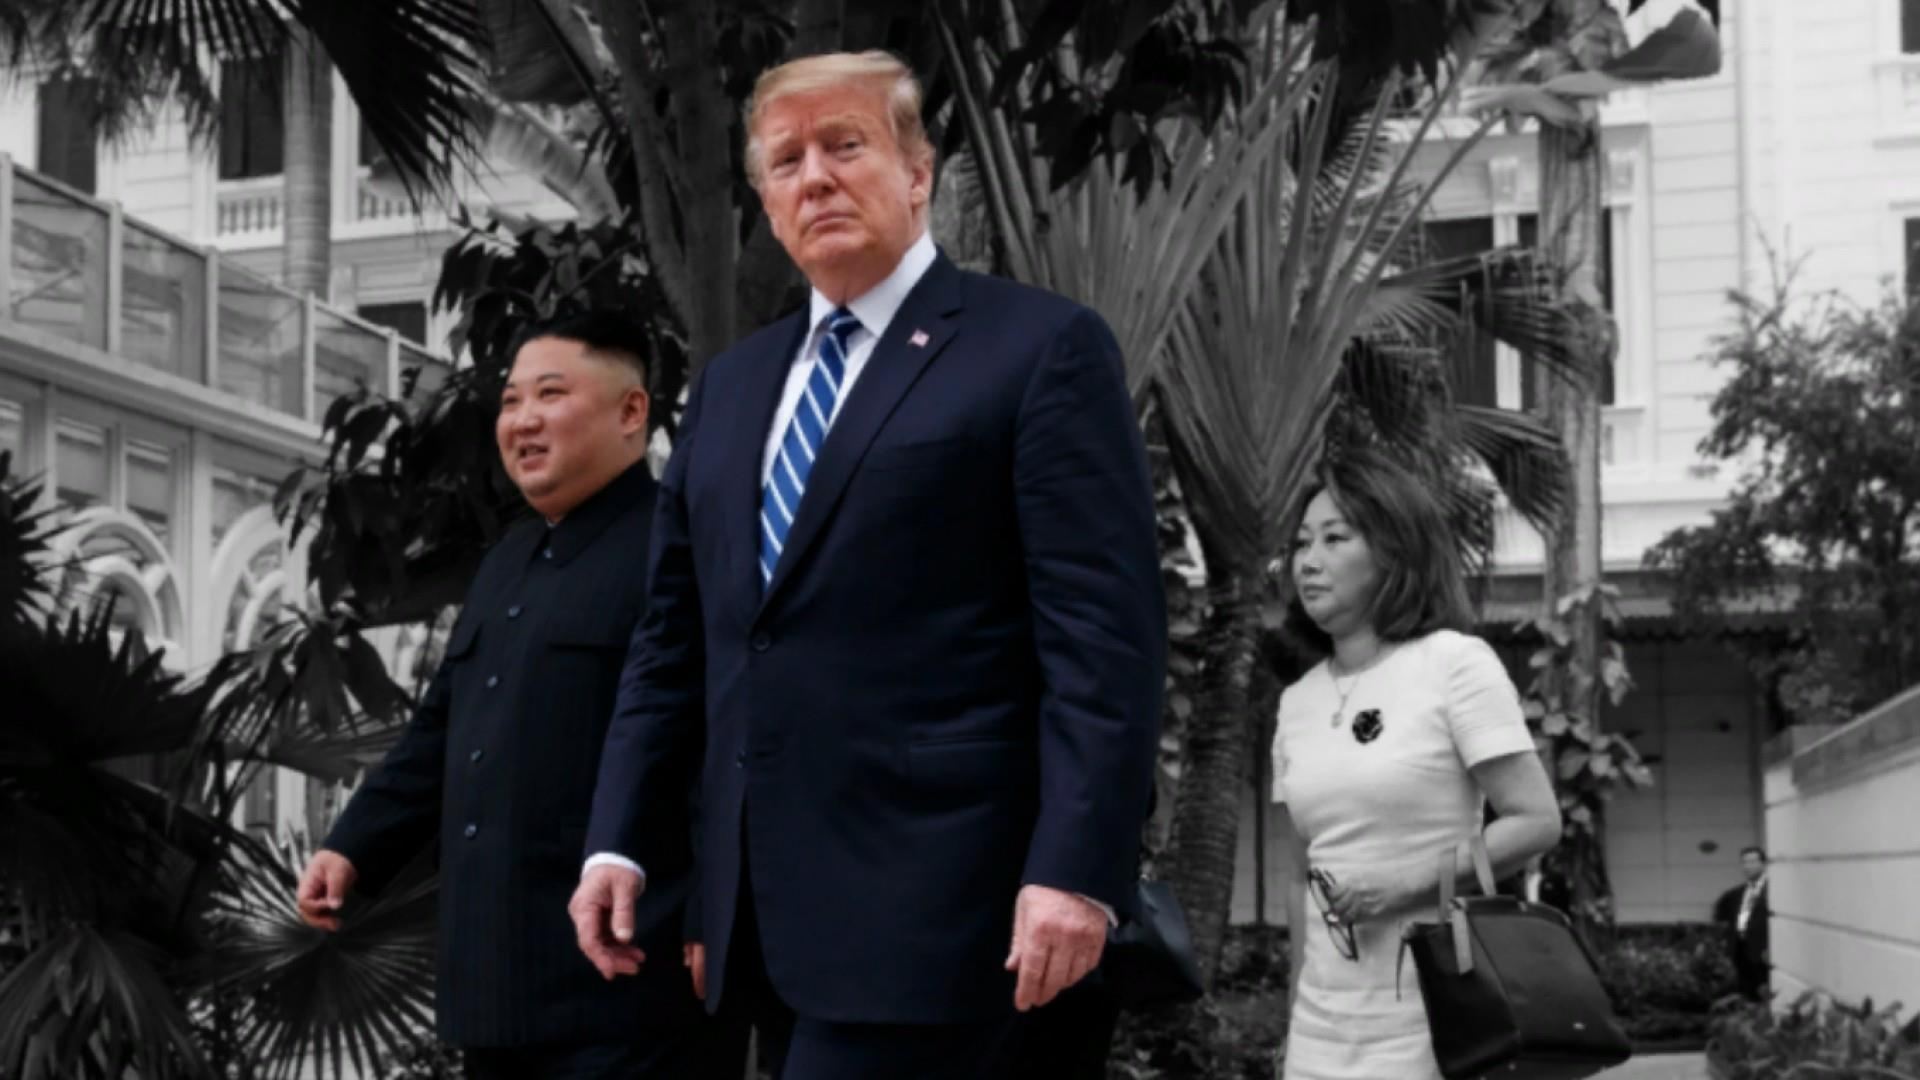 Trump praises North Korea's murderous dictator after failed summit